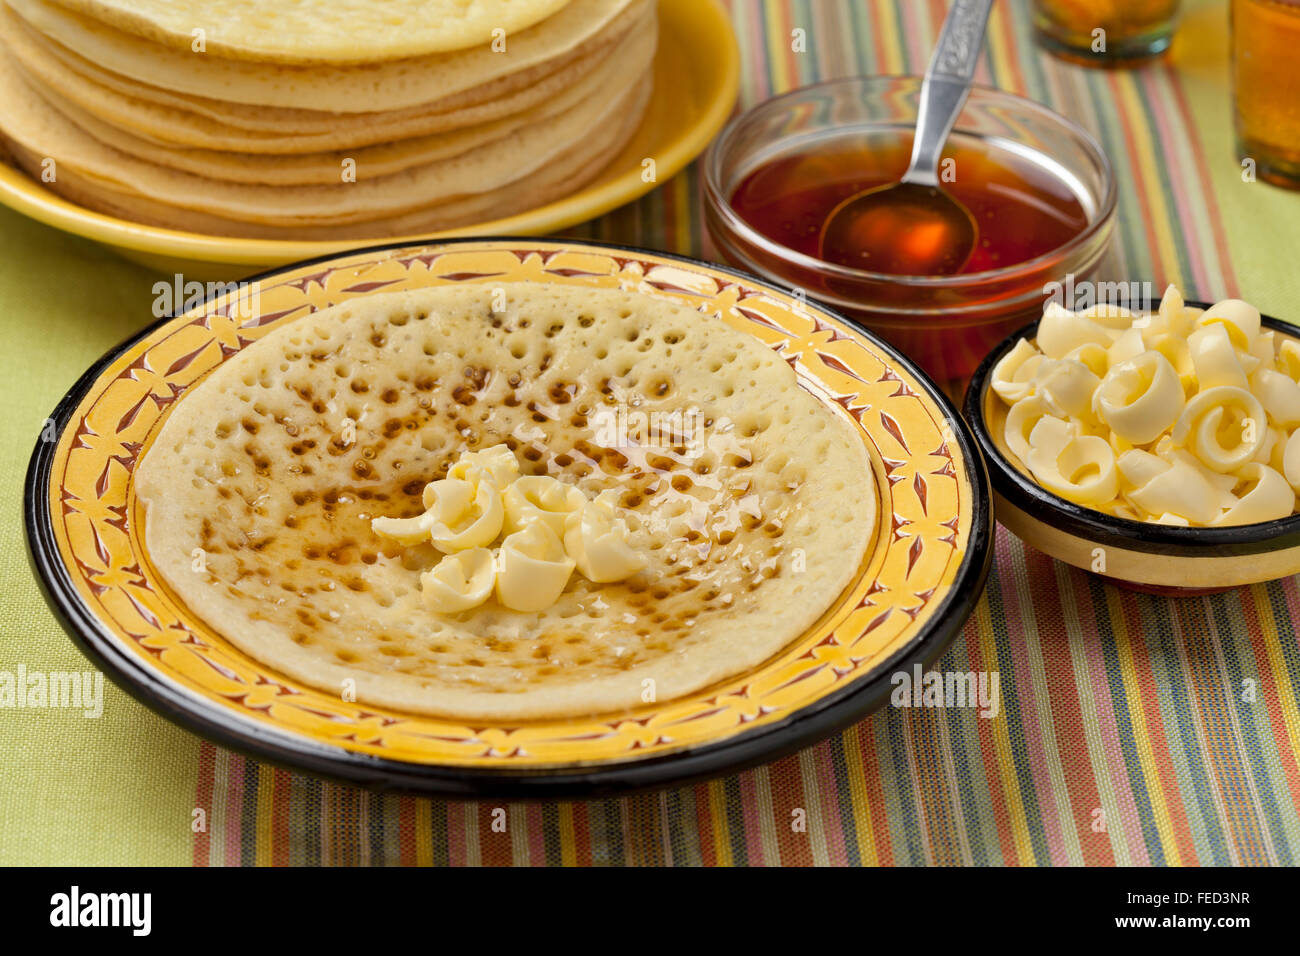 Traditional Moroccan beghrir pancakes with butter and honey - Stock Image